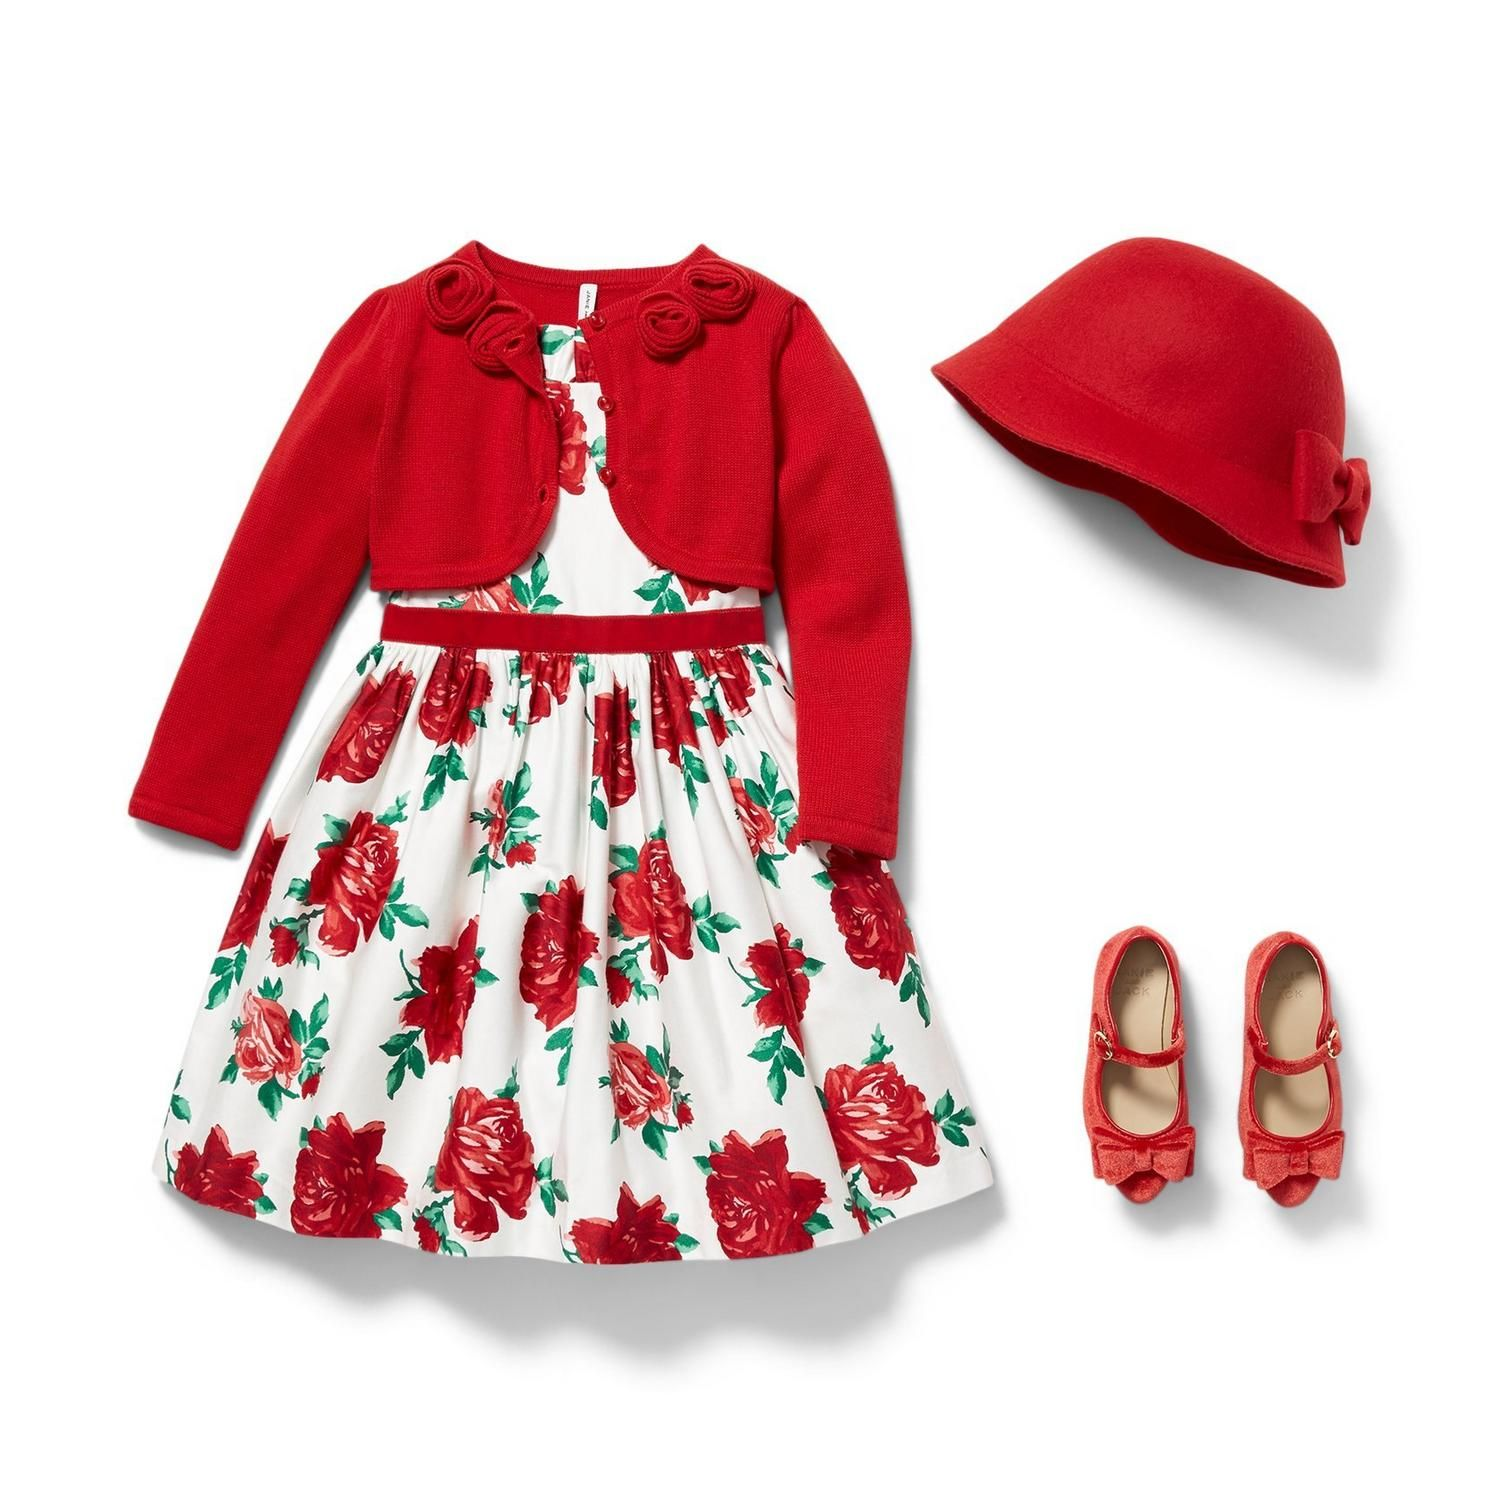 Girl Ruby Rose Print Rose Dress By Janie And Jack Rose Dress Outfit Girl Outfits Rose Print Dress